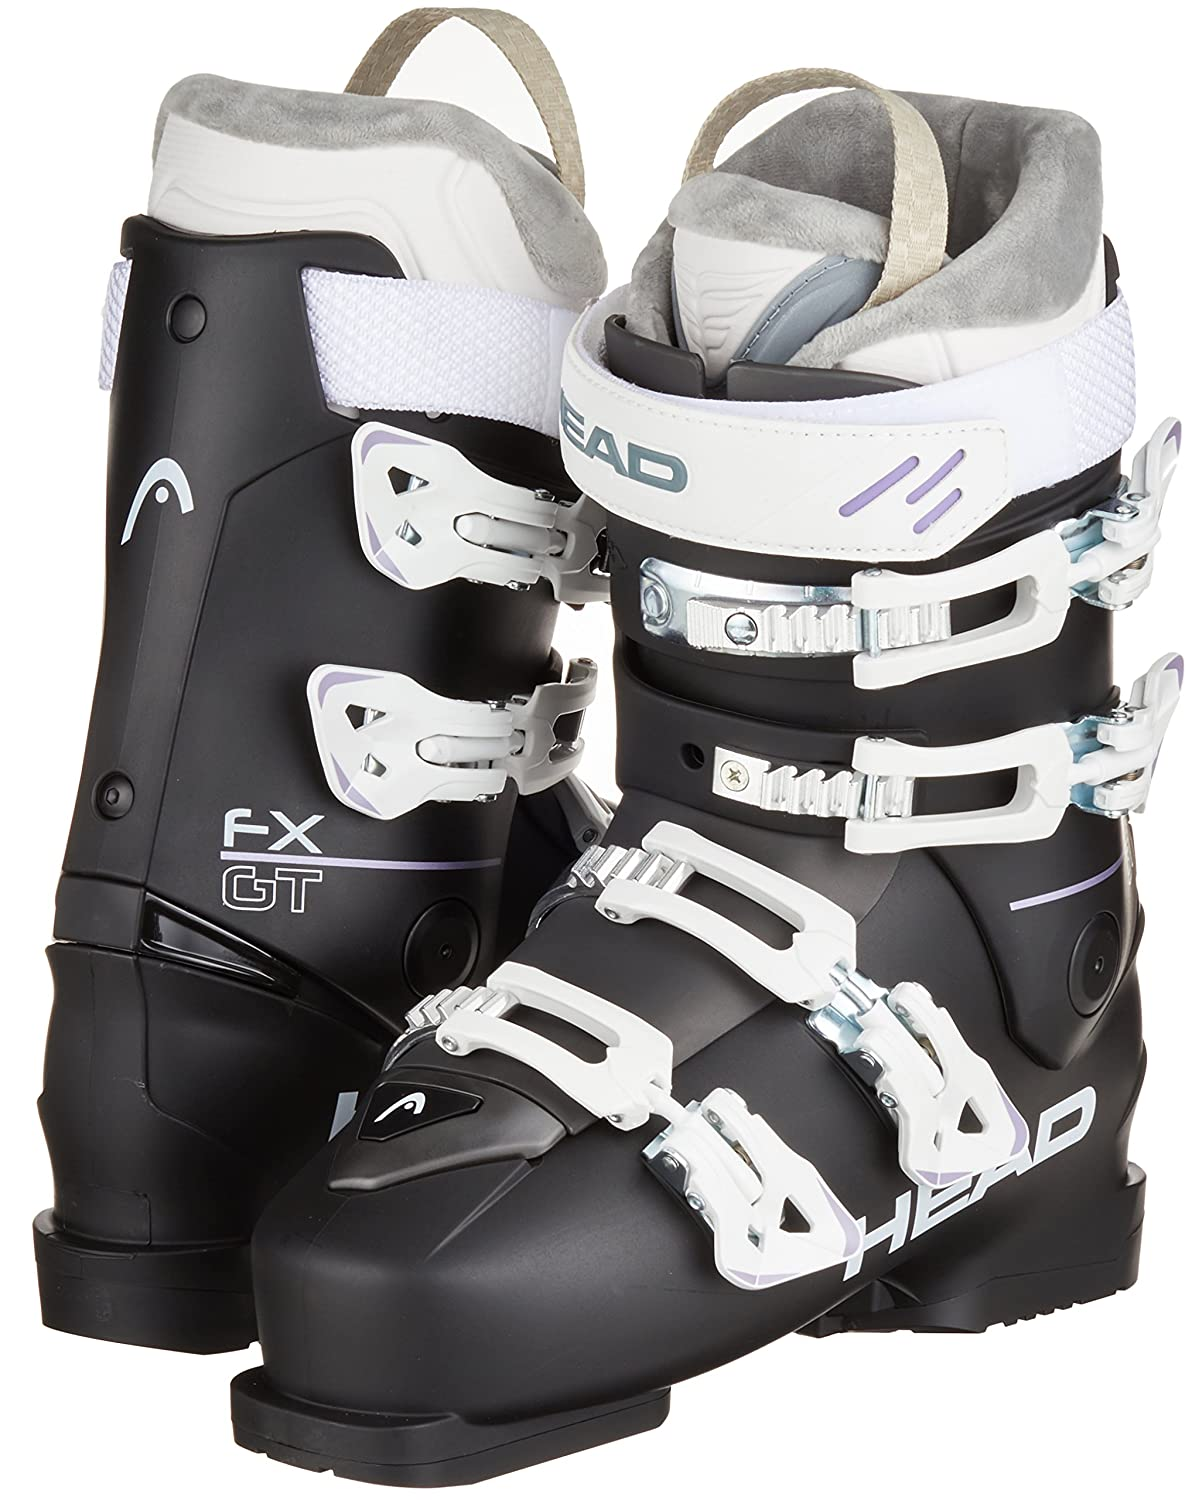 De W Botas 2018 Gt Para Head Esquí MujerblackCollection Fx xrodBeC